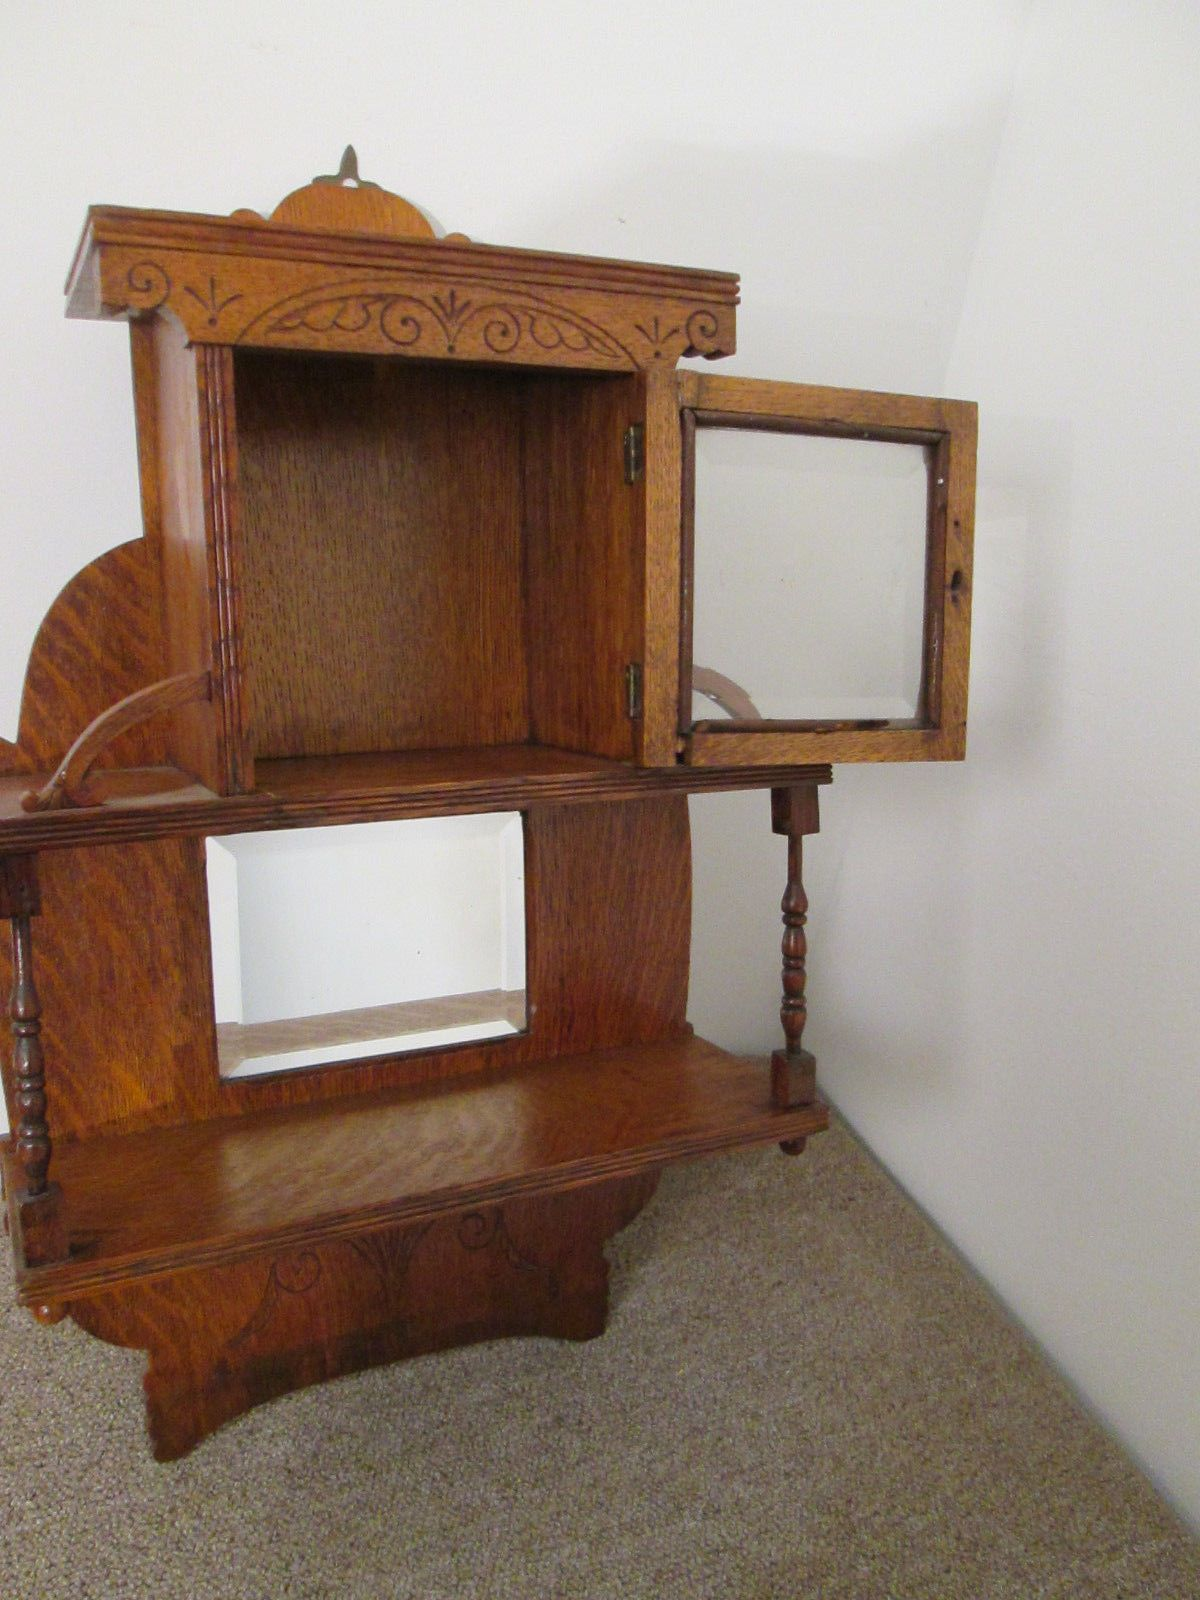 Edwardian (1901-1910) Other Antique Furniture Antique Edwardian Mahogany Wall Mounted Shelves Whatnot Collectors Shelving